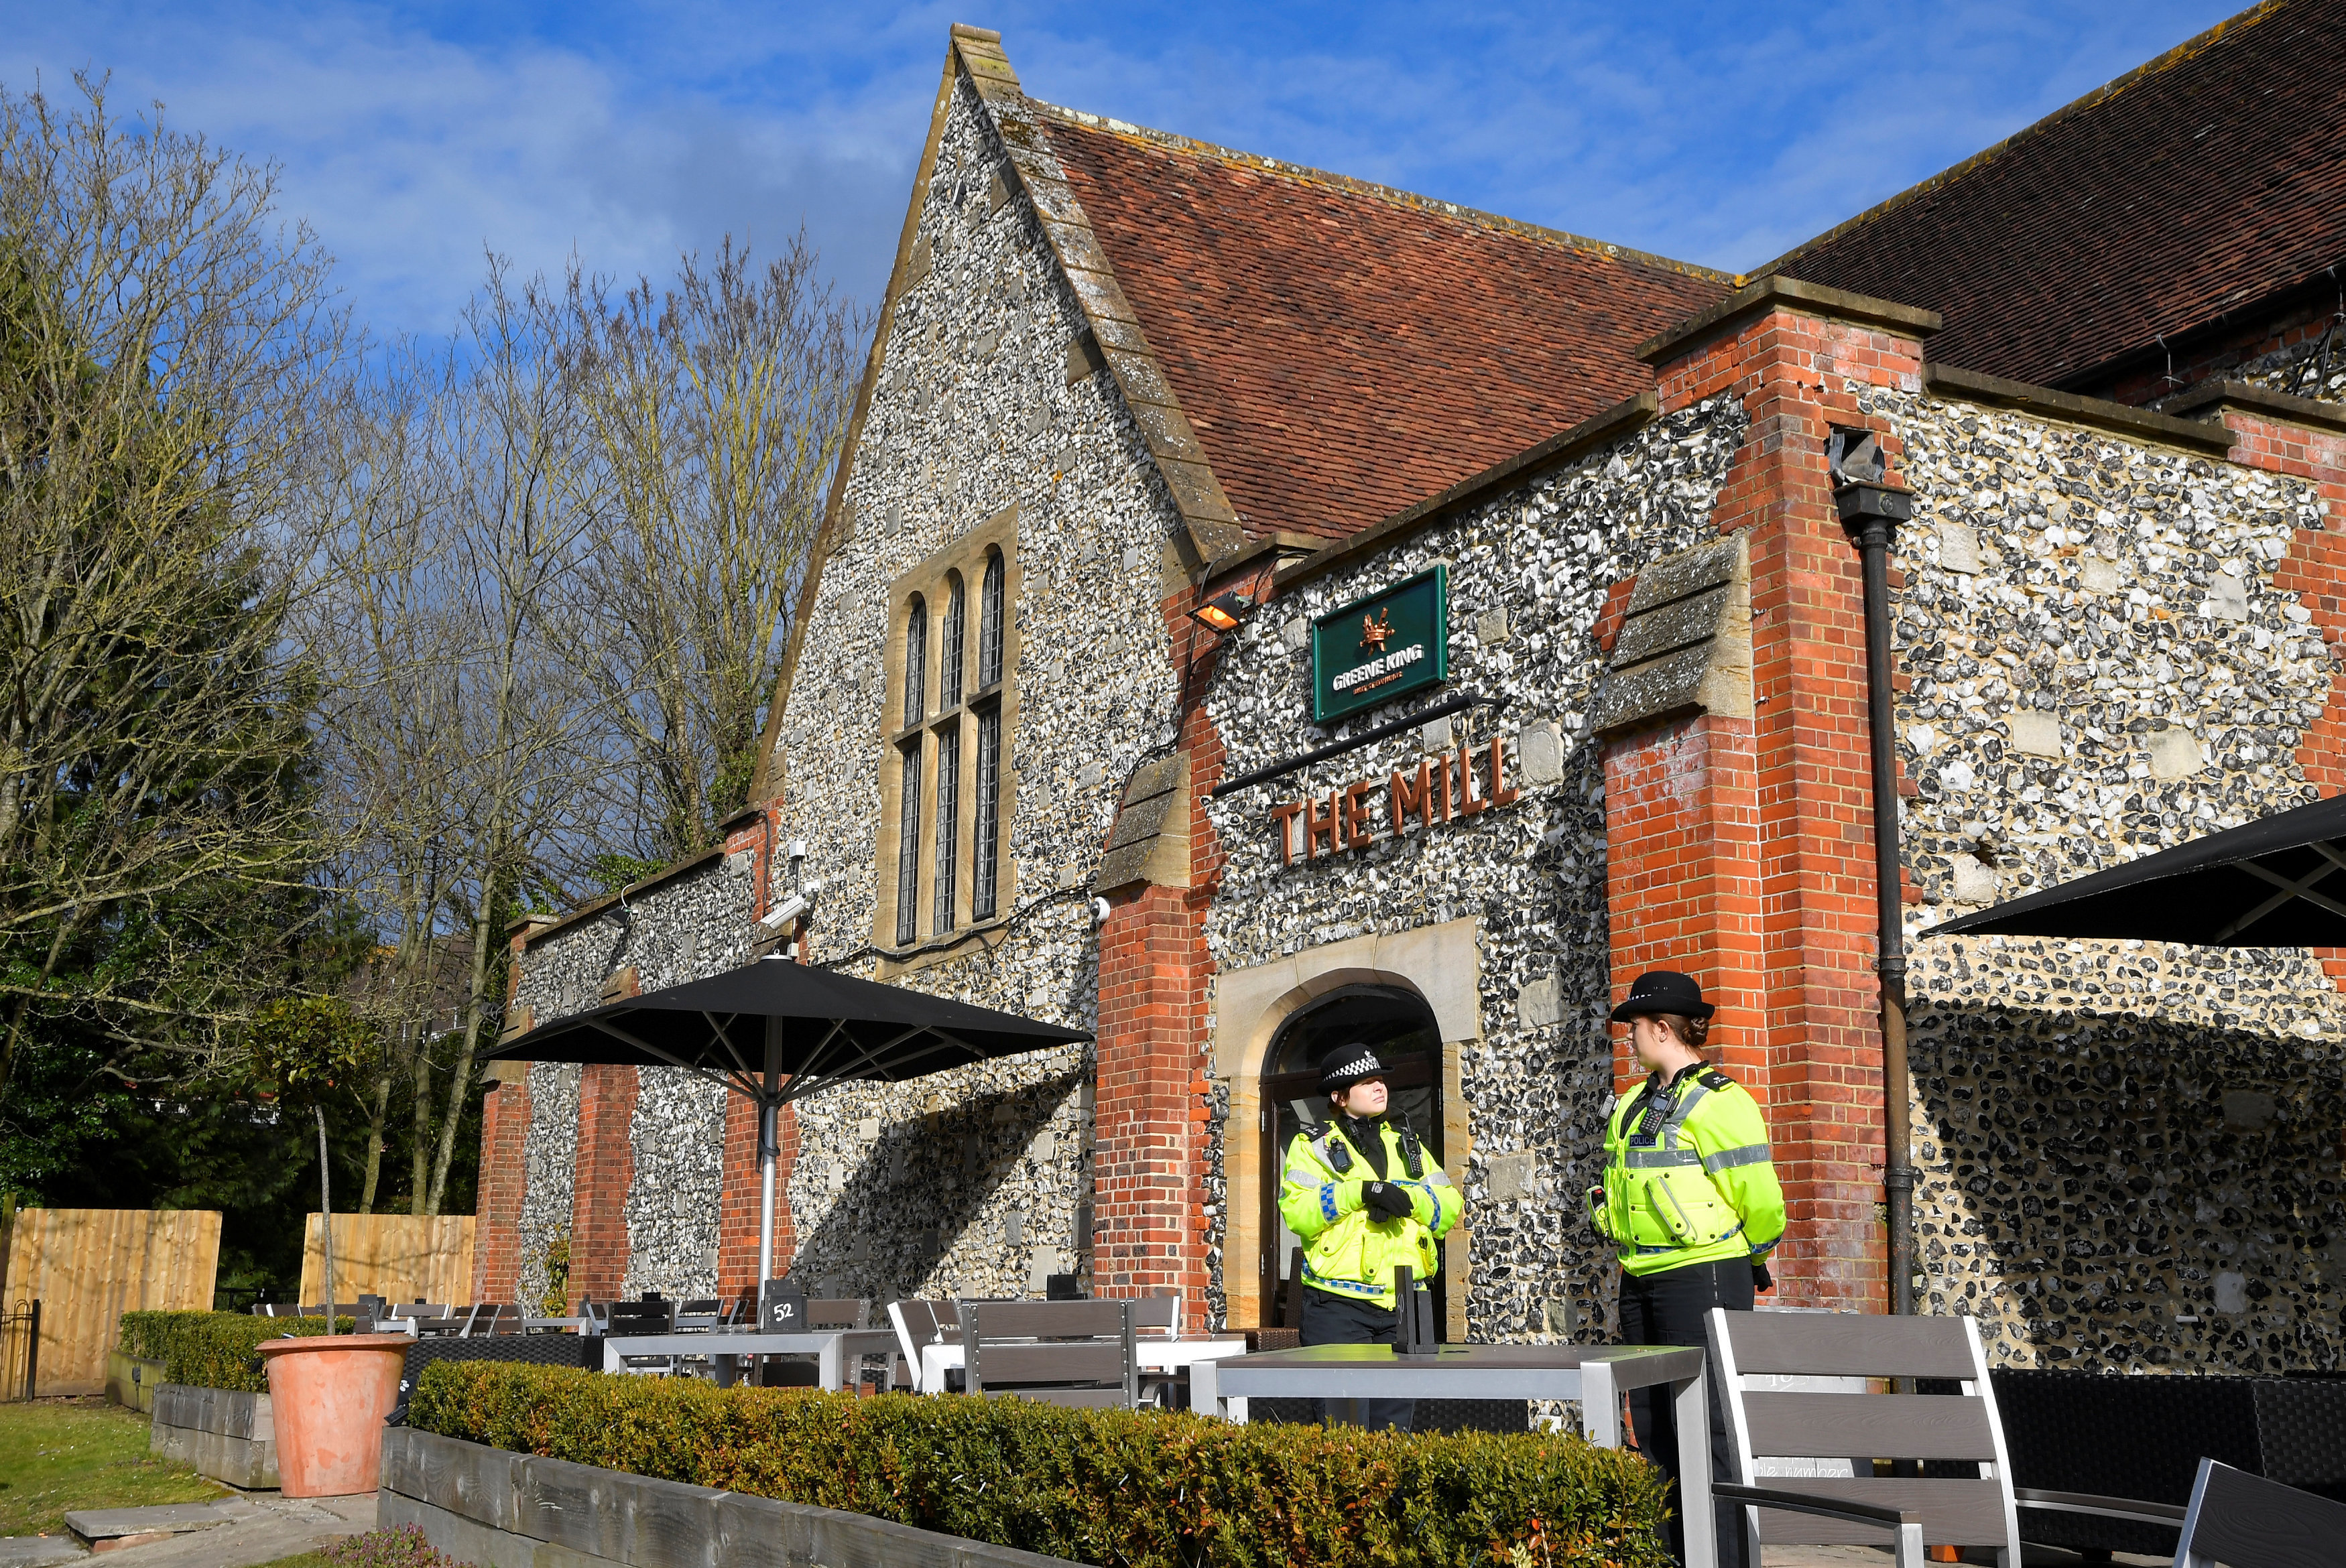 Police officers stand outside a pub near to where former Russian inteligence officer Sergei Skripal, and his daughter Yulia were found unconscious after they had been exposed to an unknown substance, in Salisbury, Britain, March 7, 2018